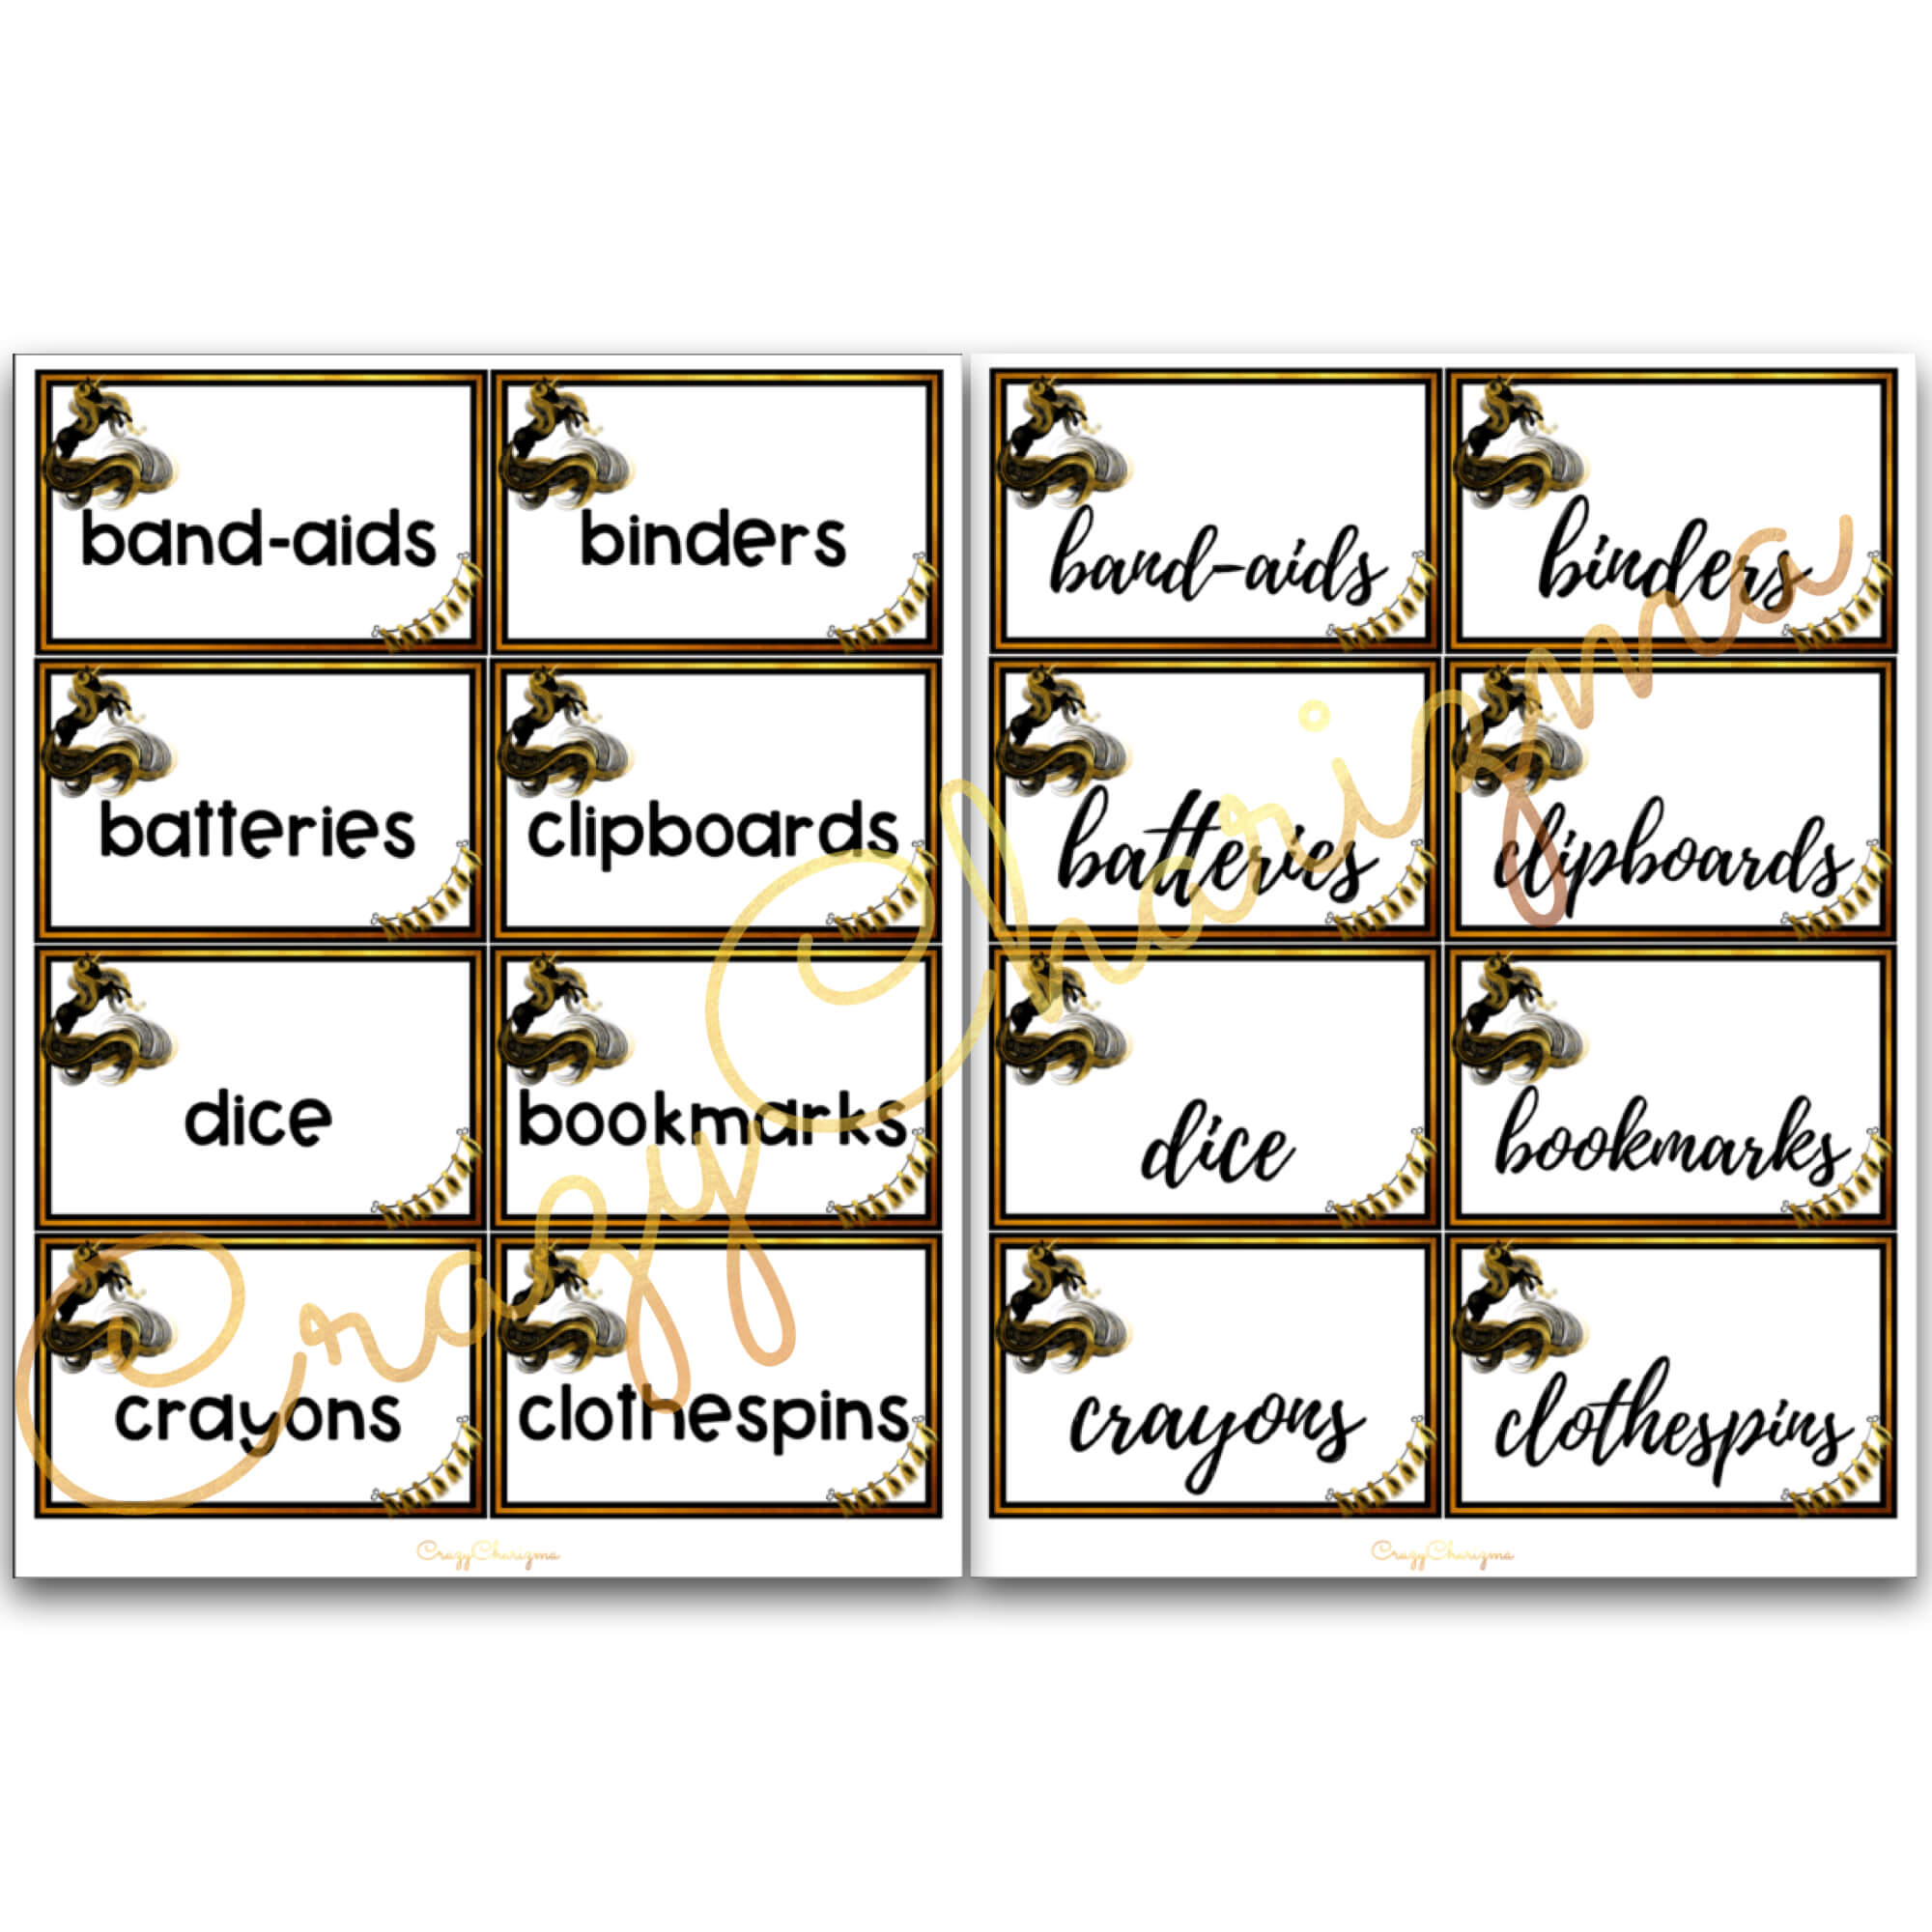 Looking for bright and clear EDITABLE supply labels? Spice your classroom with this visually appealing classroom decor!